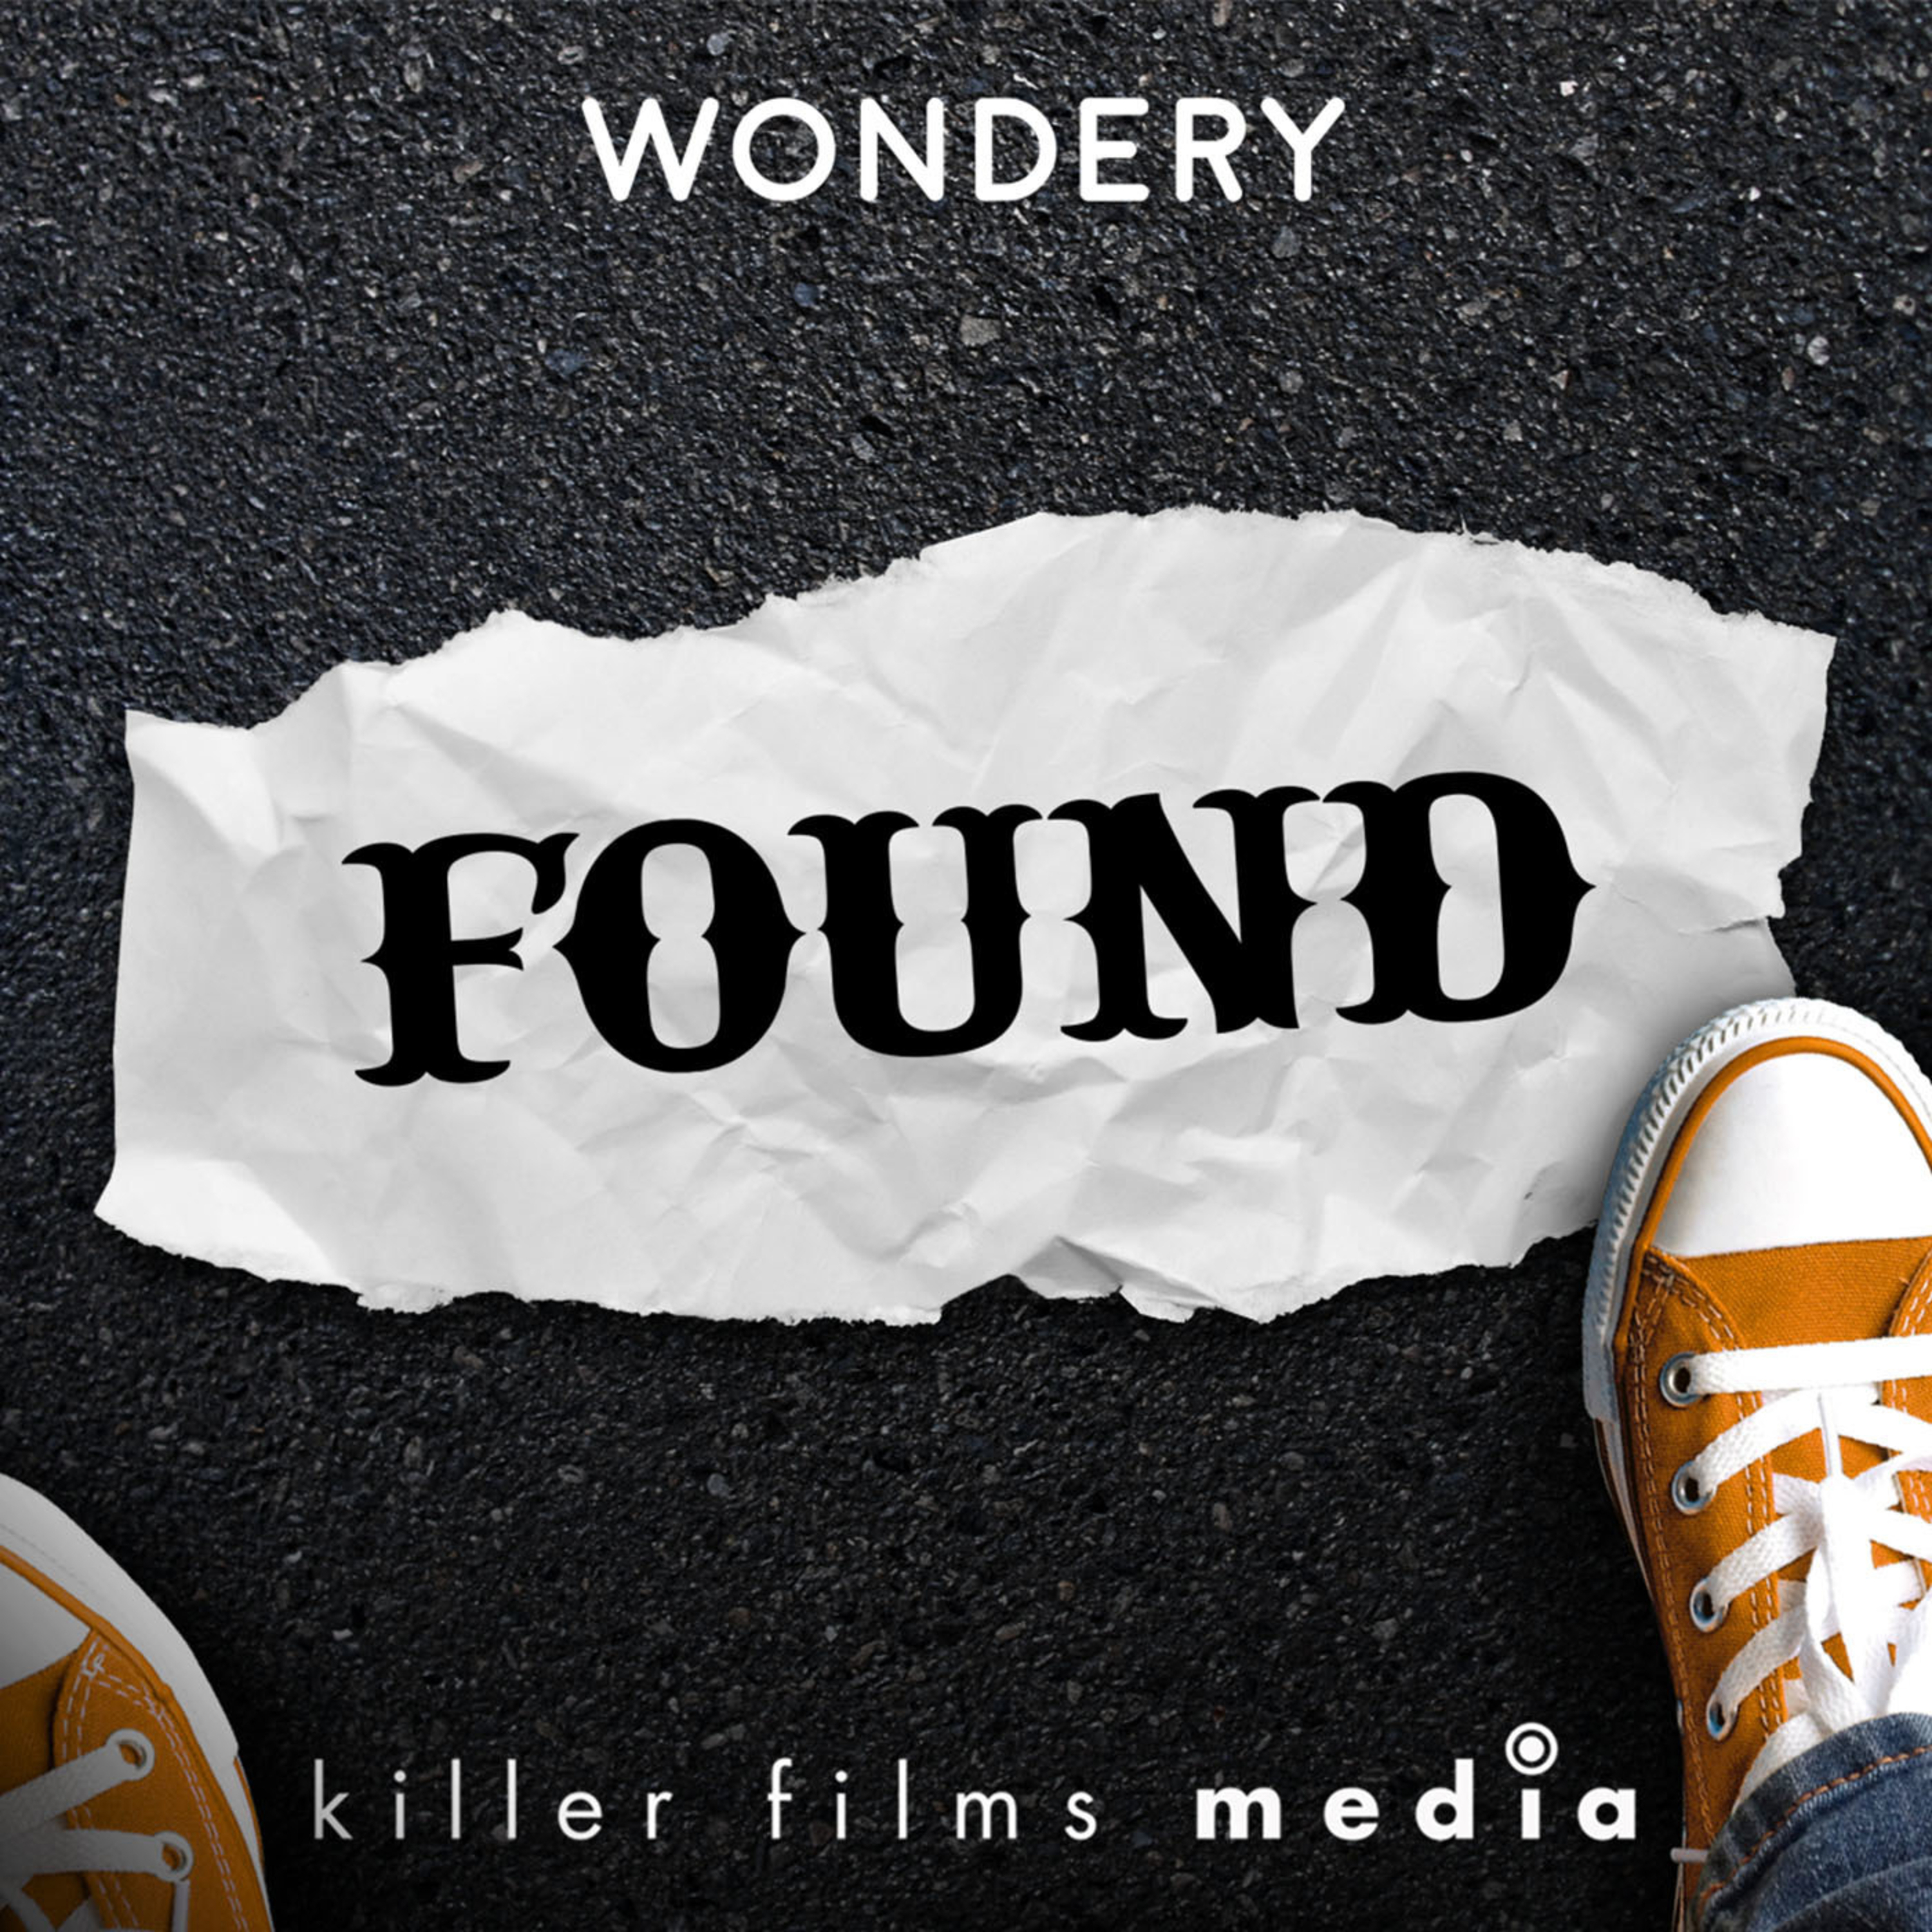 Introducing the FOUND podcast series